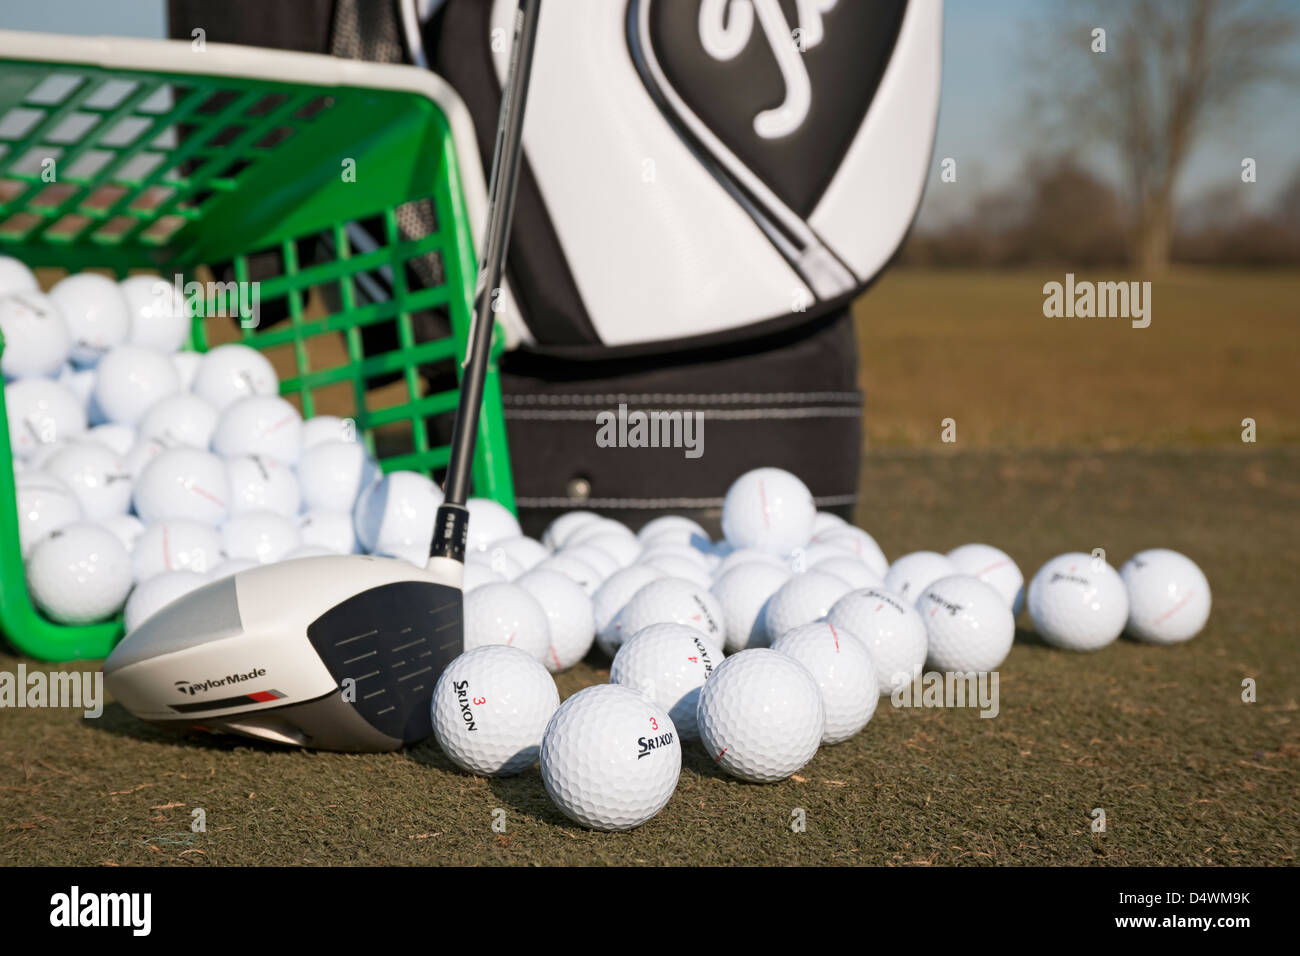 Golf range balls and driver on a golf practice ground England UK United Kingdom GB Great Britain - Stock Image